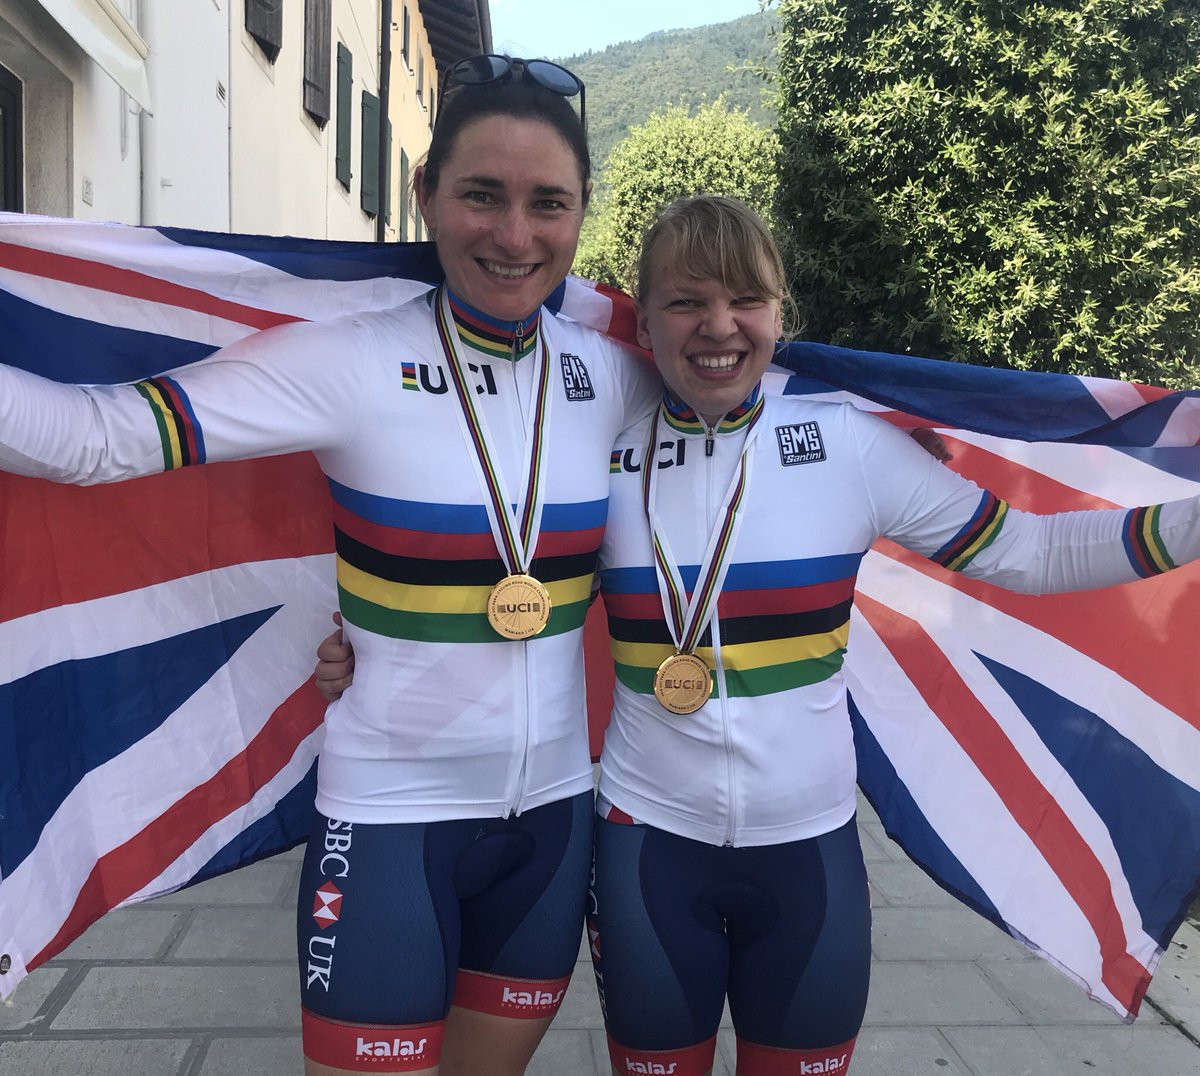 Dame Sarah Storey, left, and Katie Toft, who both won gold for Britain on the final day of the Para-cycling Road World Championship in Maniago, Italy today ©Twitter